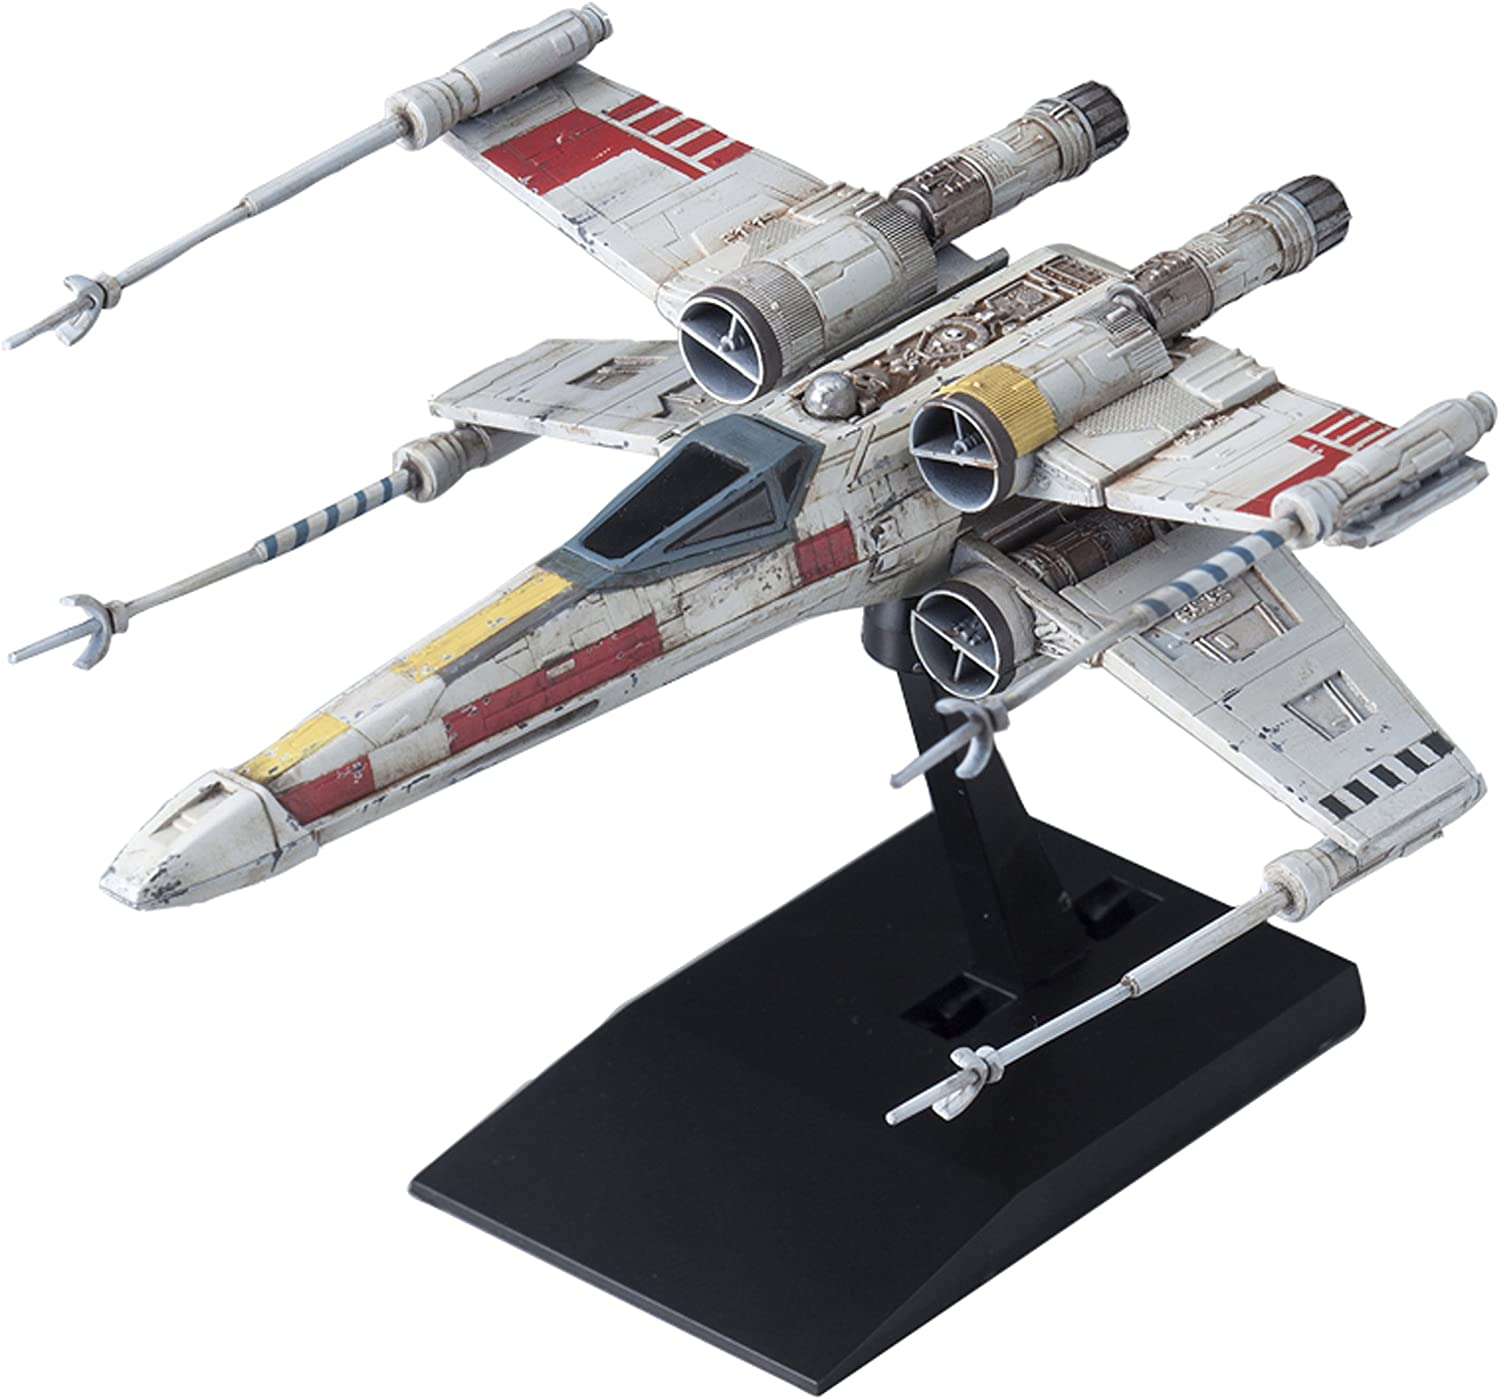 Japan Action Figures - Vehicle model 002 Star Wars X-wing starfighter Plastic *AF27* by Bandai